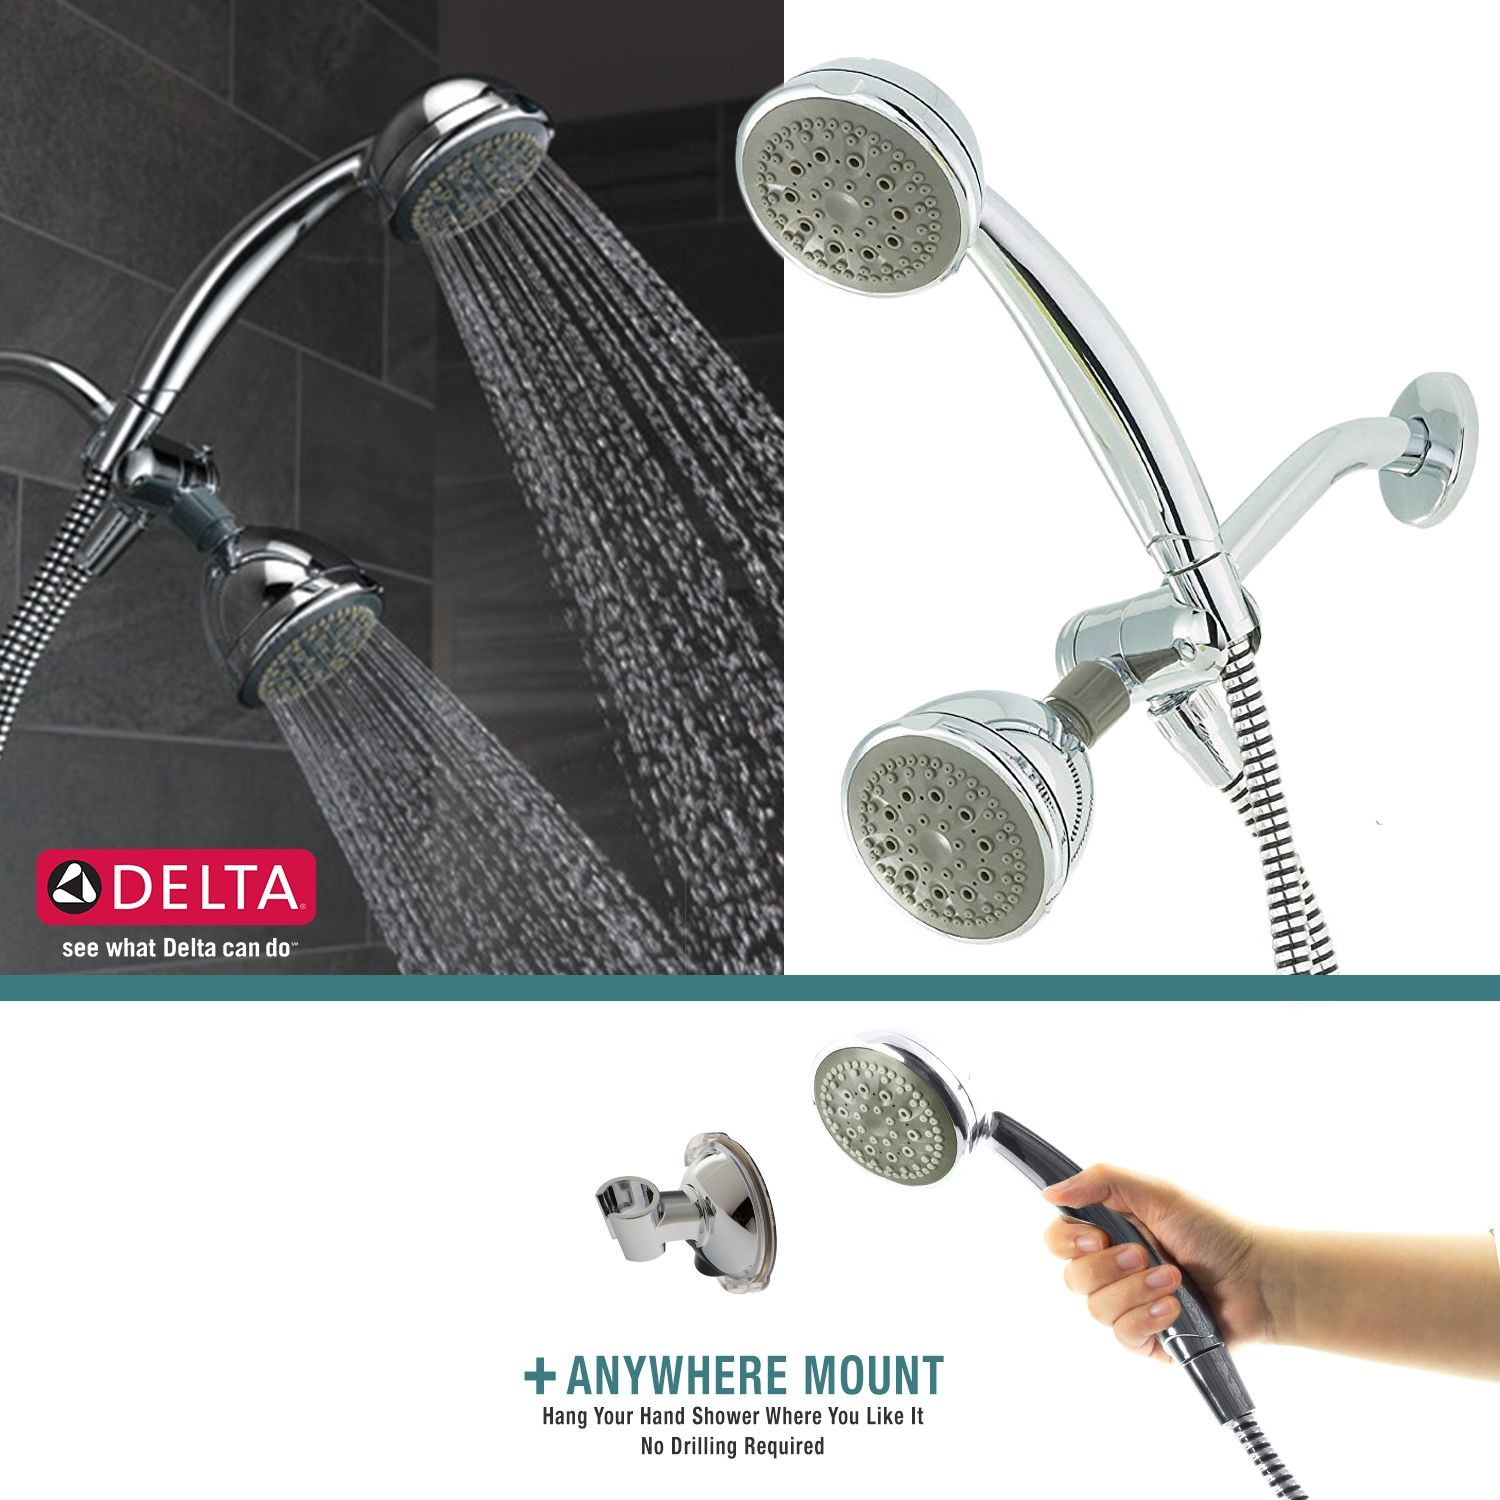 Delta 5 Spray Handheld Shower Head Combo Set With Anywhere Mount Holder Chrome Discontinued No Longer Available Dual Shower Heads Shower Heads Delta Faucets